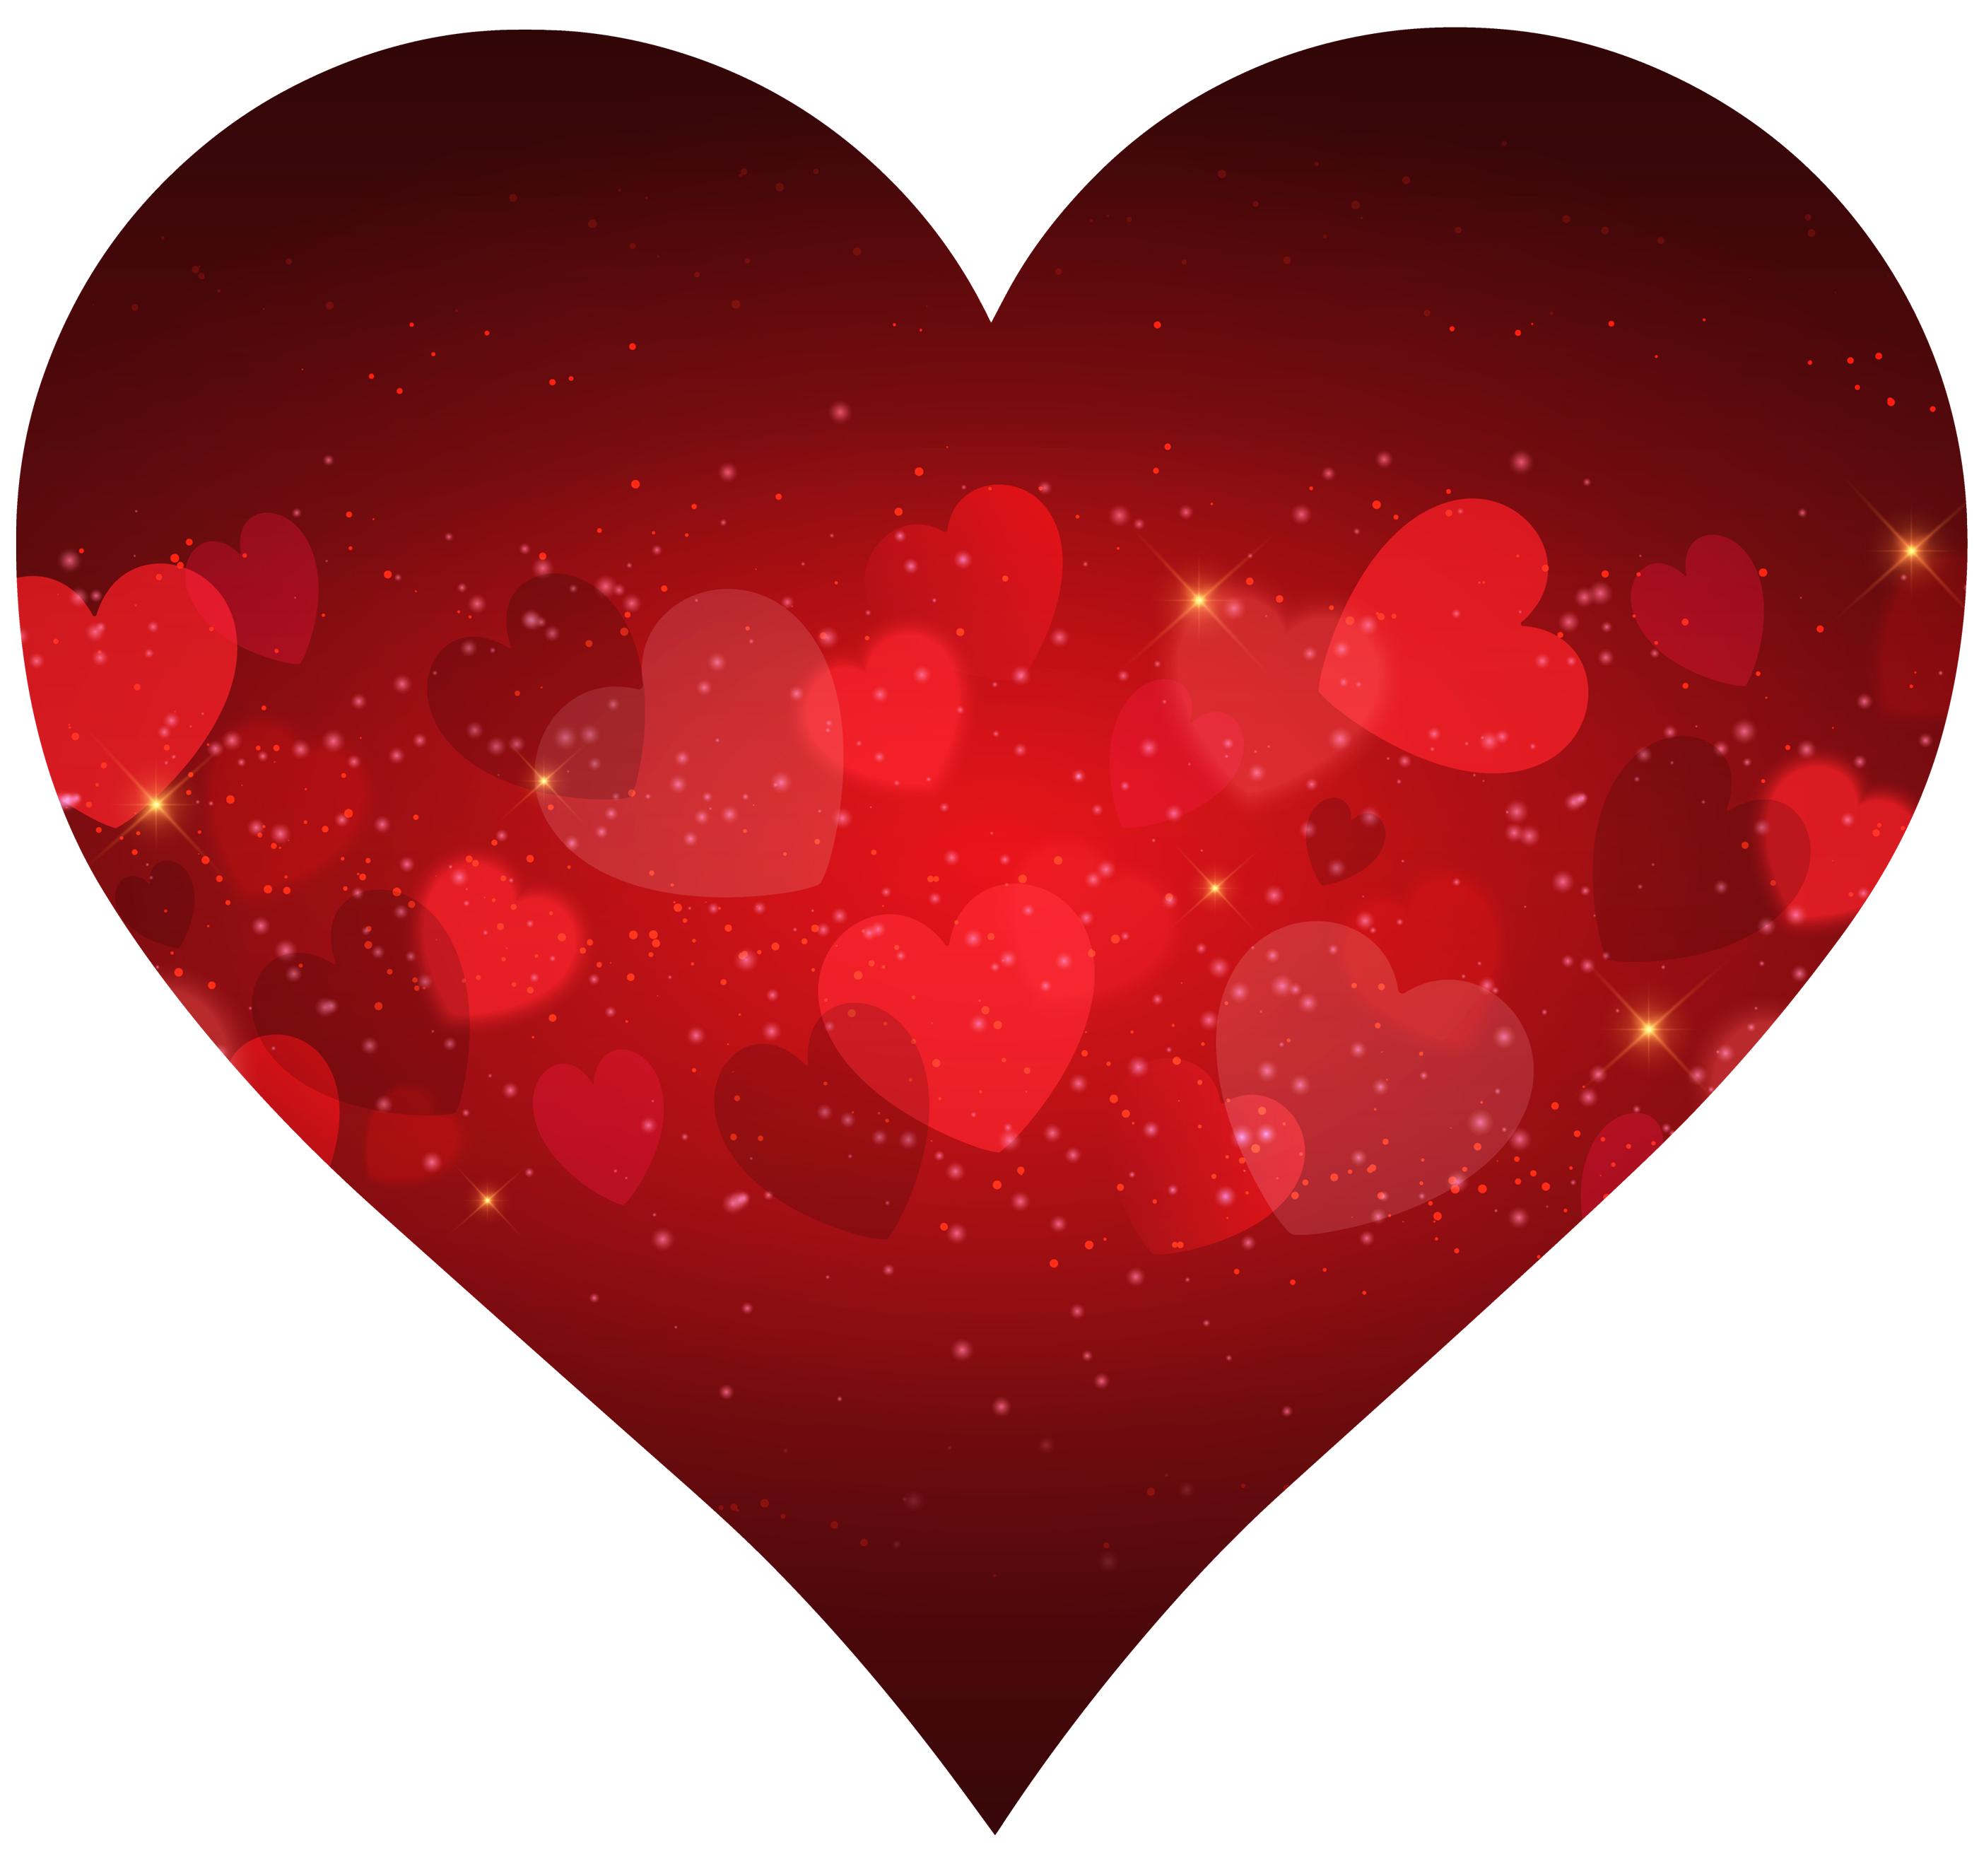 Heartbeat Png Transparent Black: Heart Transparent PNG Pictures